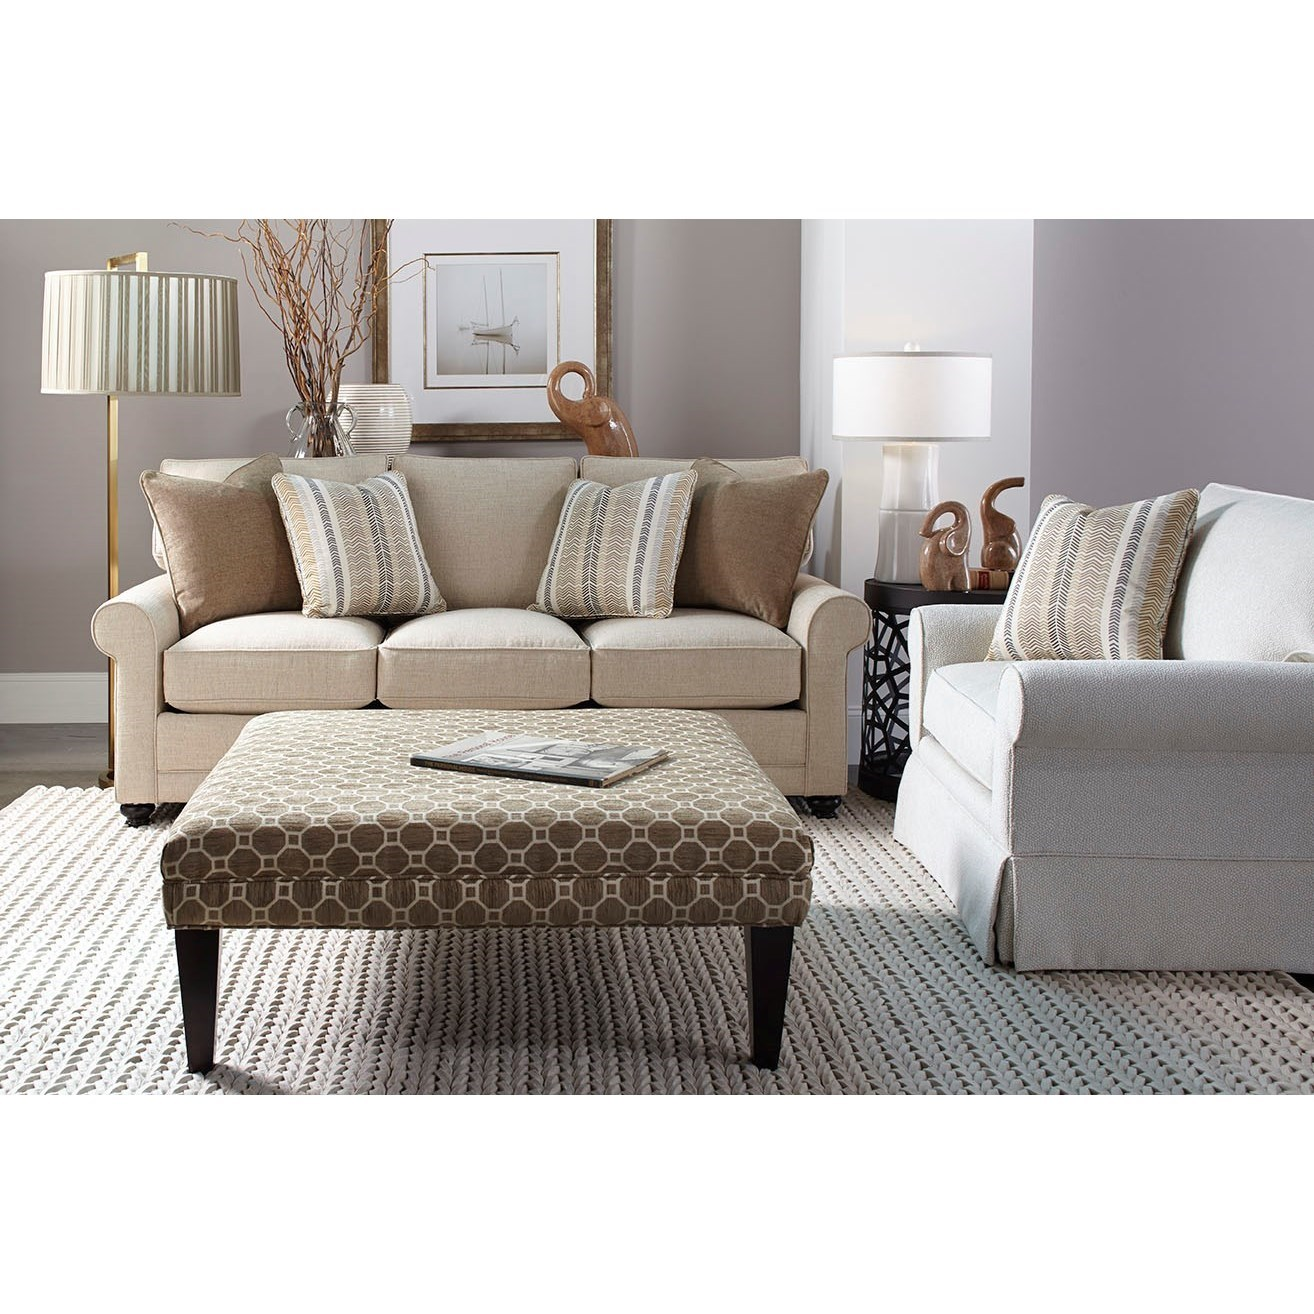 My Style I Transitional Stationary Sofa by Rowe at Baer's Furniture